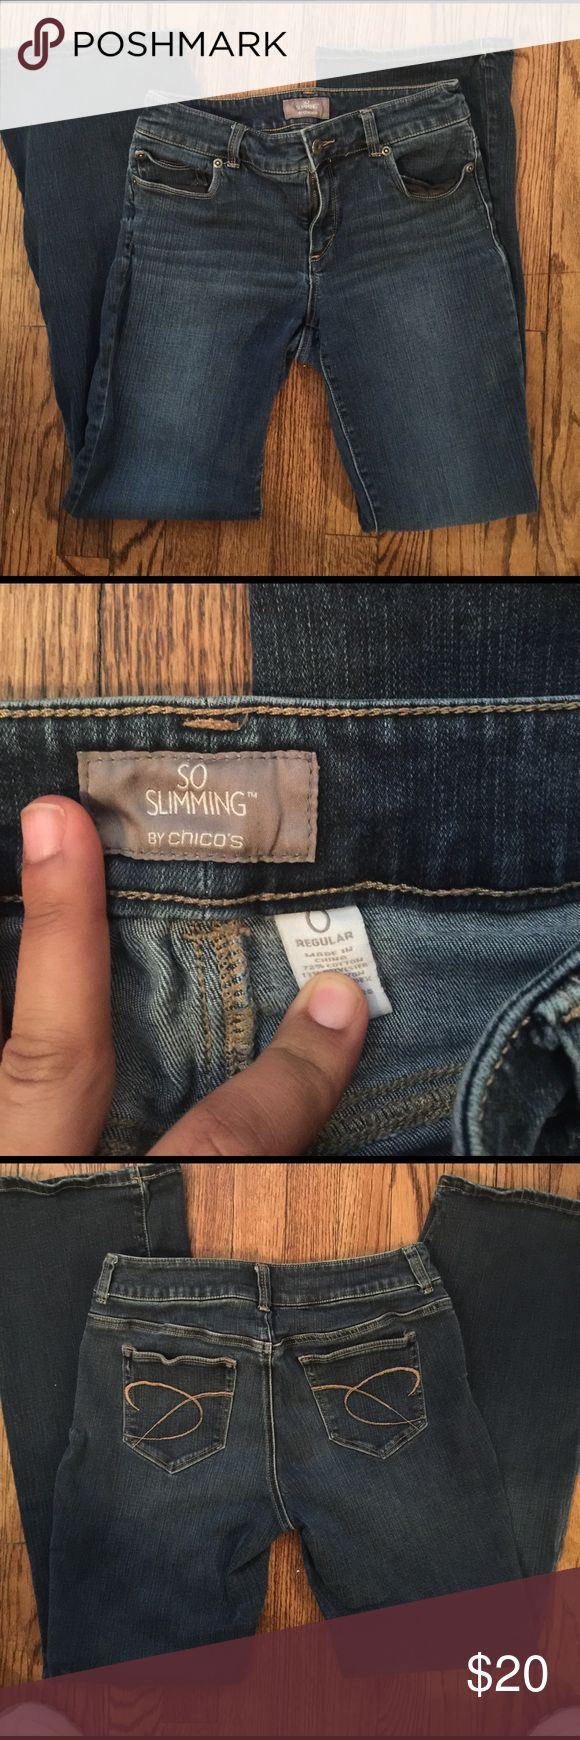 """Chico jeans """"so slimming"""" Chicos jeans size 0. In good used condition no rips or holes. So slimming style. Good stretch to these jeans Chico's Jeans Flare & Wide Leg"""